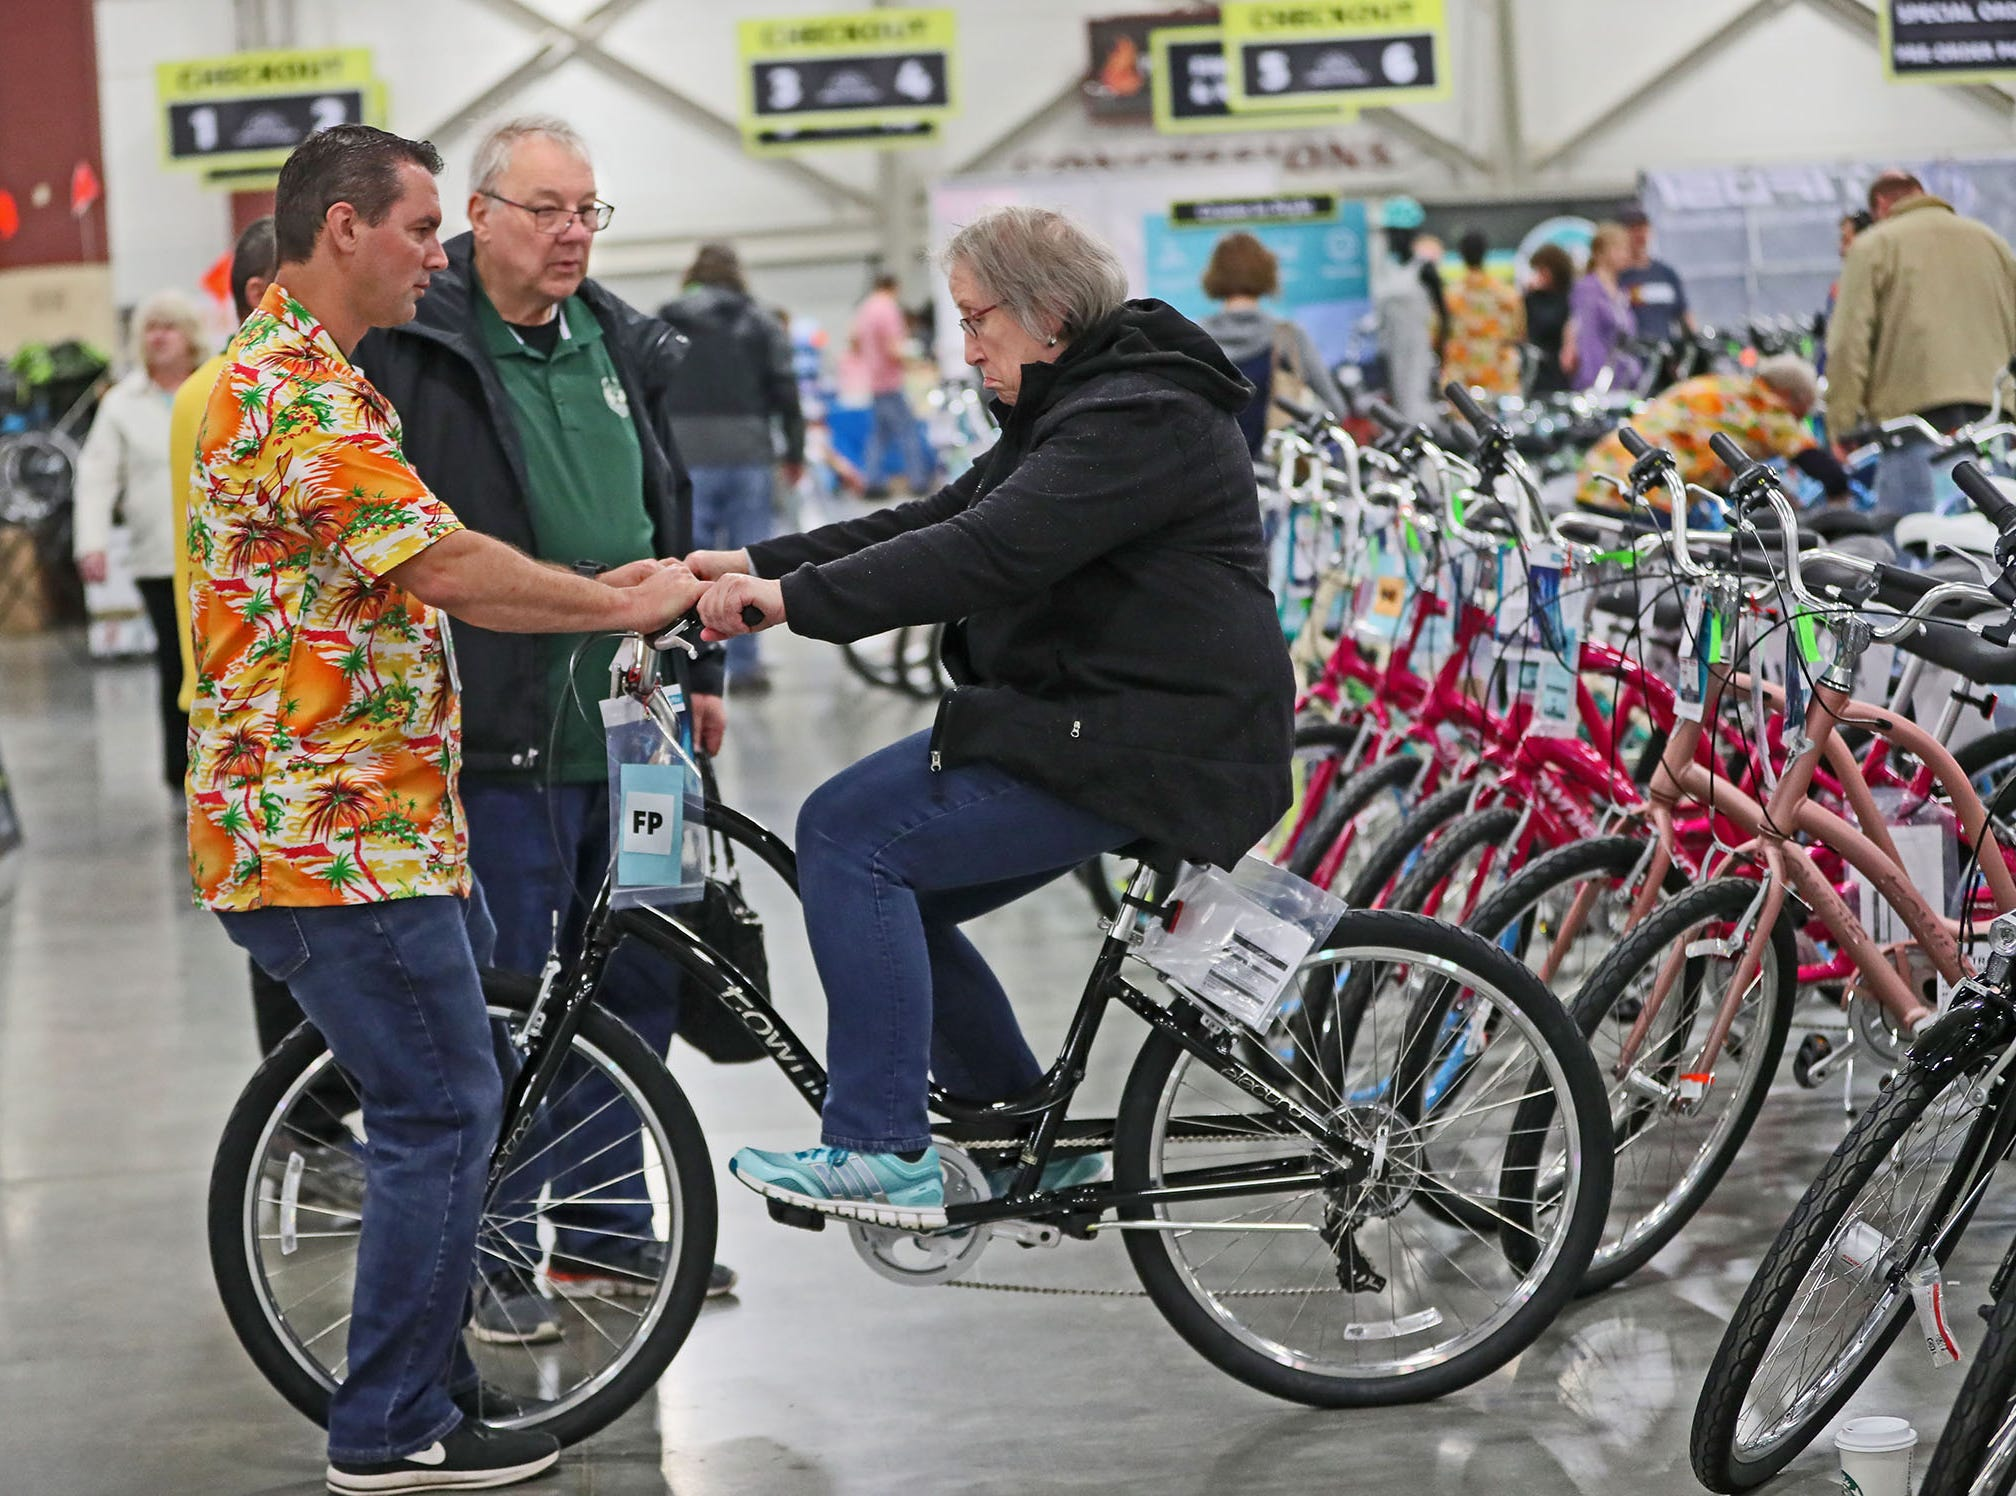 Everything bike was on display and for sale at Wheel & Sprocket's 35th annual Bike Expo Sale at the Wisconsin Exposition Center at State Fair Park.  Travis Vance of the Electra Bicycle Company helps Susan Weyer of Waukesha get the feel for one of the comapny's bikes. Her husband Barry Weyer (center) looks on.